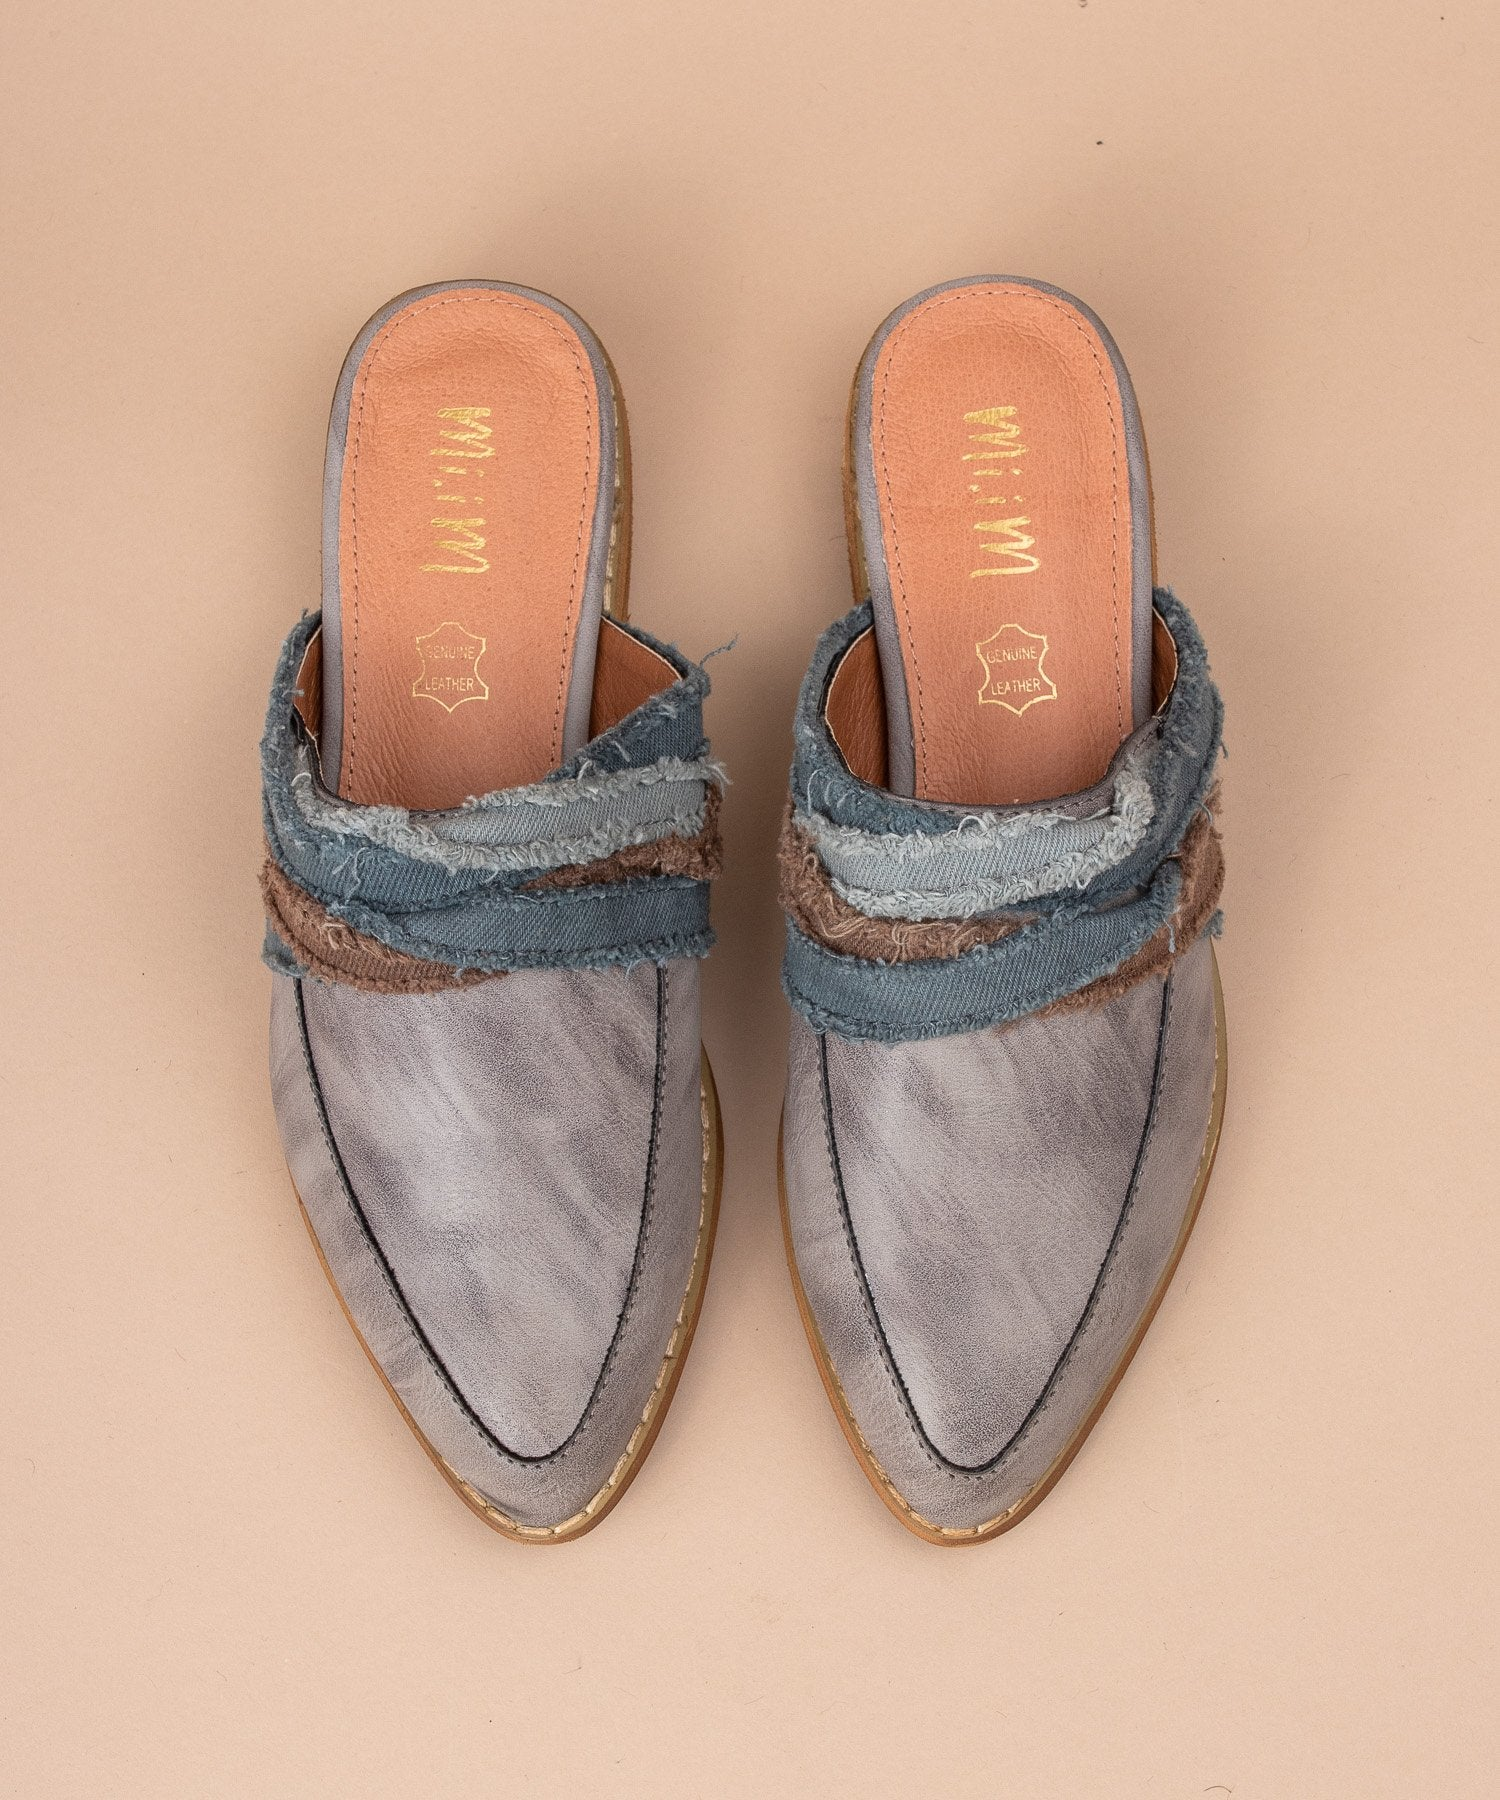 zSOLD OUTz Tilli Fabric Wrapped Vintage Loafer in Grey